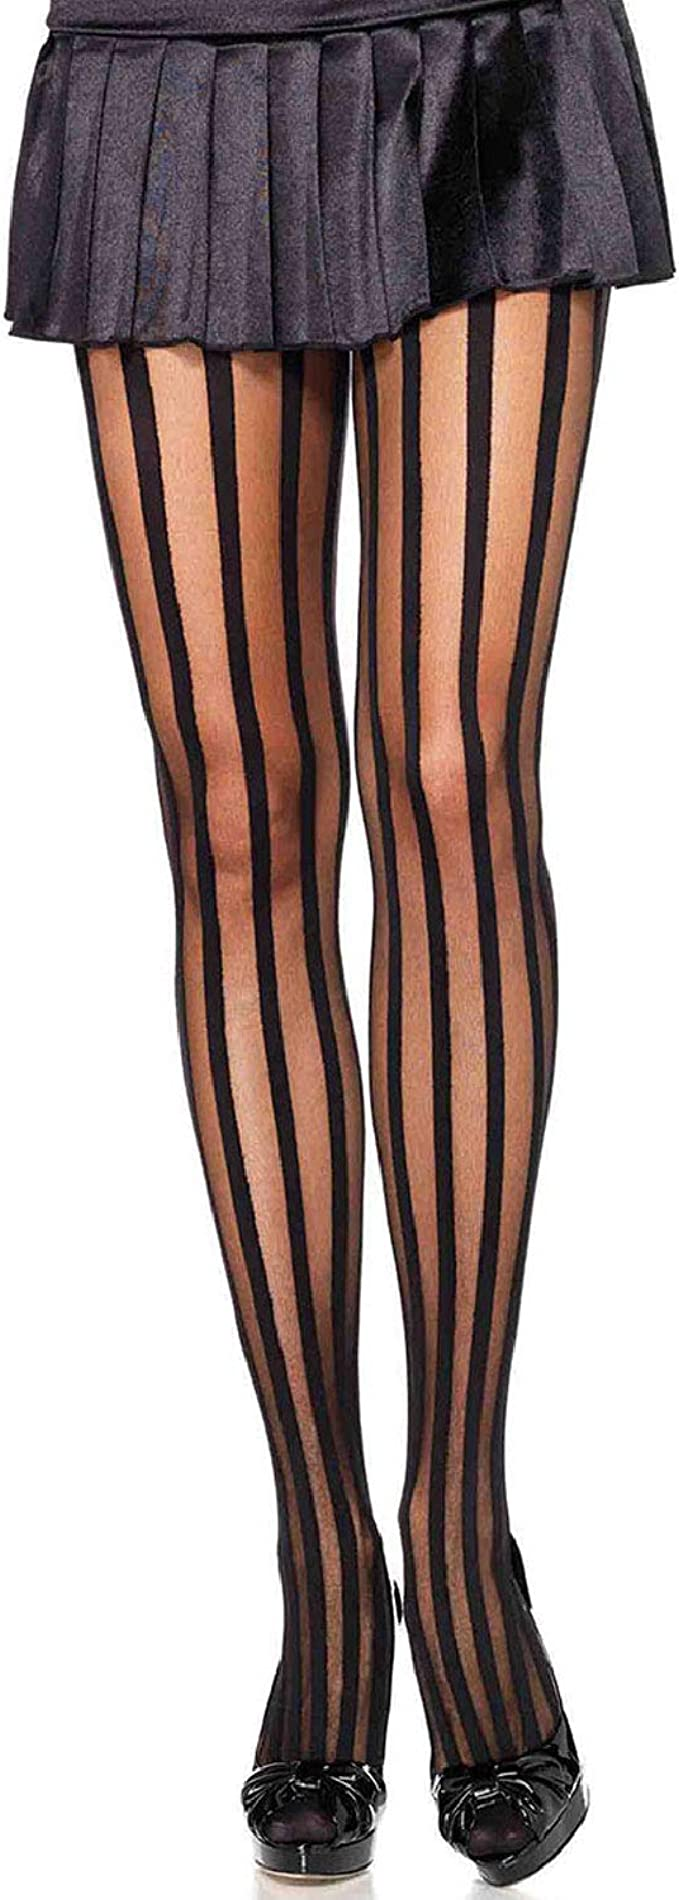 1920s Stockings, Tights, Nylons, Socks History Leg Avenue Womens Hosiery Striped Tights $10.98 AT vintagedancer.com